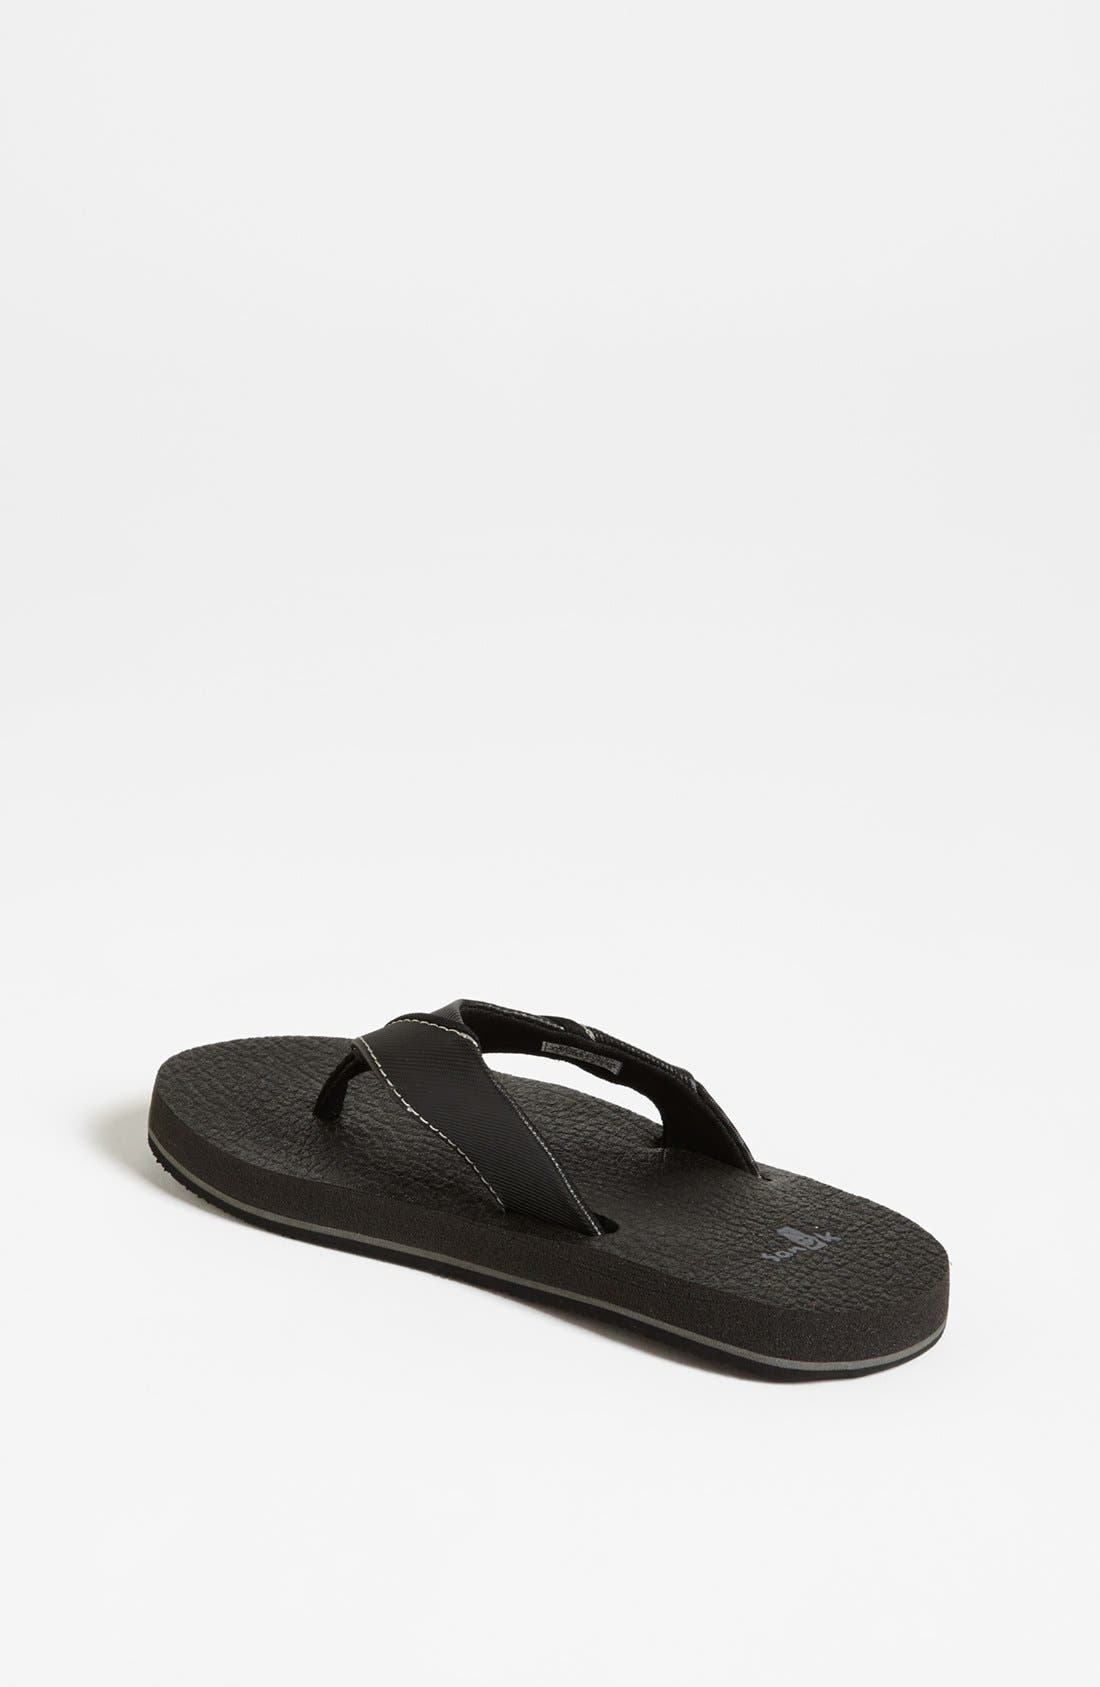 'Root Beer' Sandal,                             Alternate thumbnail 3, color,                             BLACK